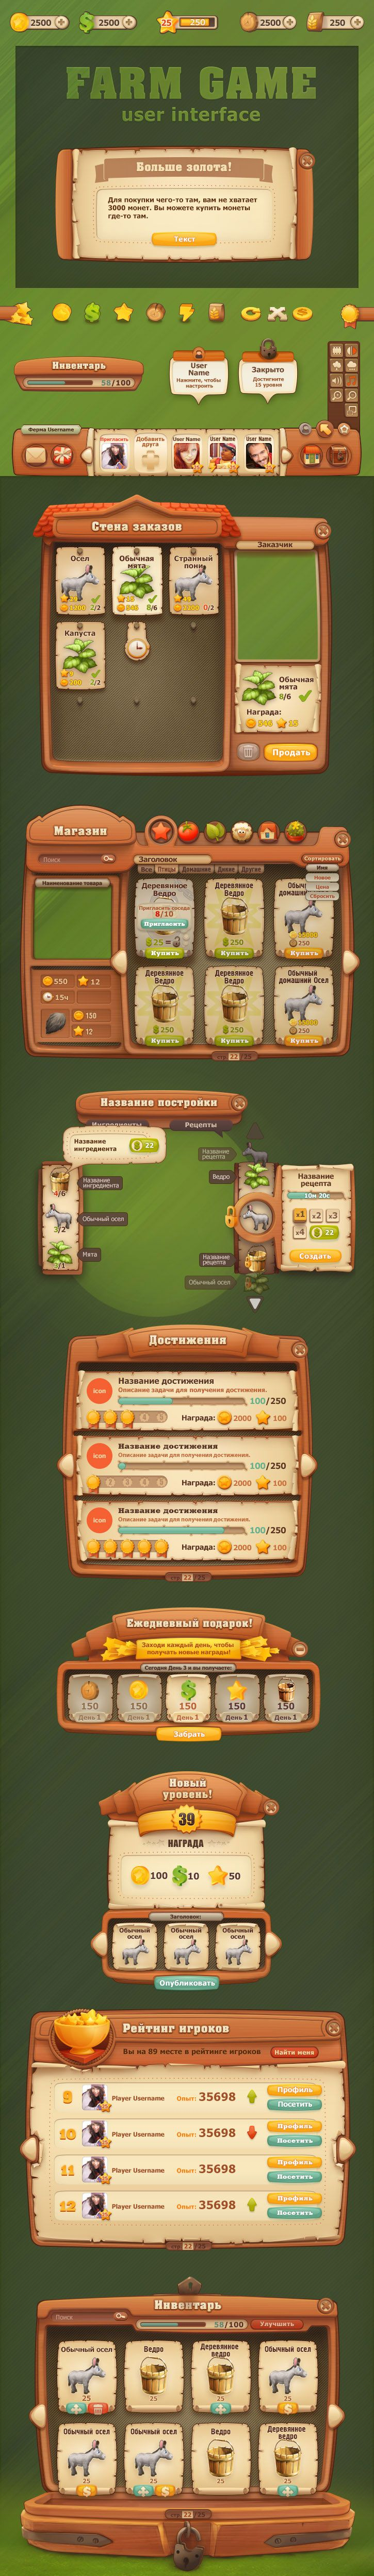 Farm game UI